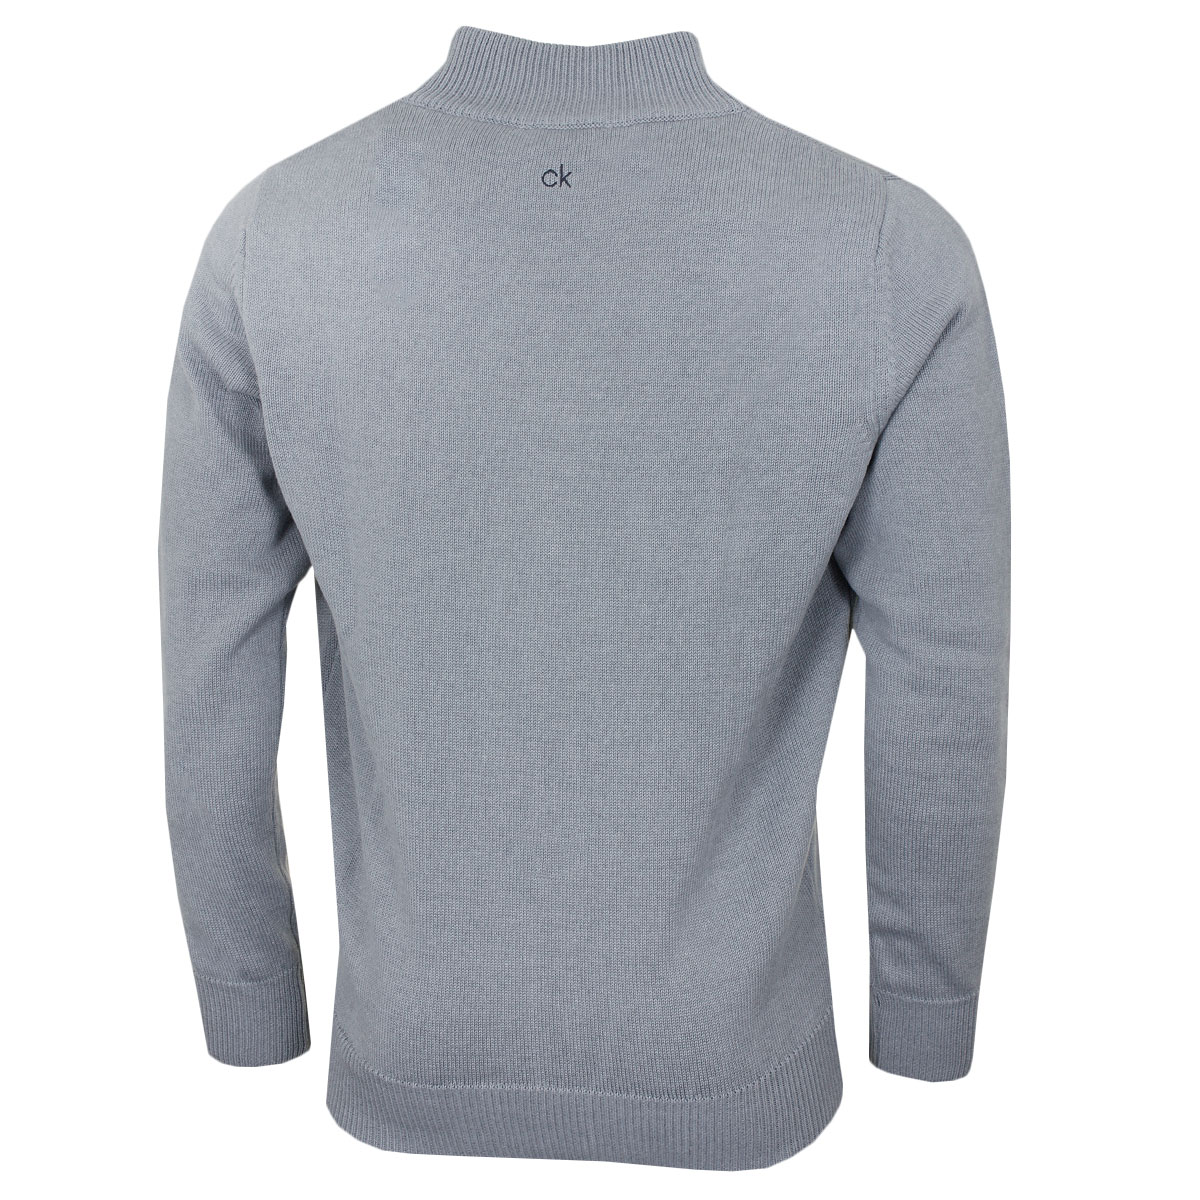 Calvin-Klein-Golf-Mens-2019-Chunky-Cotton-1-2-Zip-Golf-Top-Sweater-37-OFF-RRP thumbnail 50